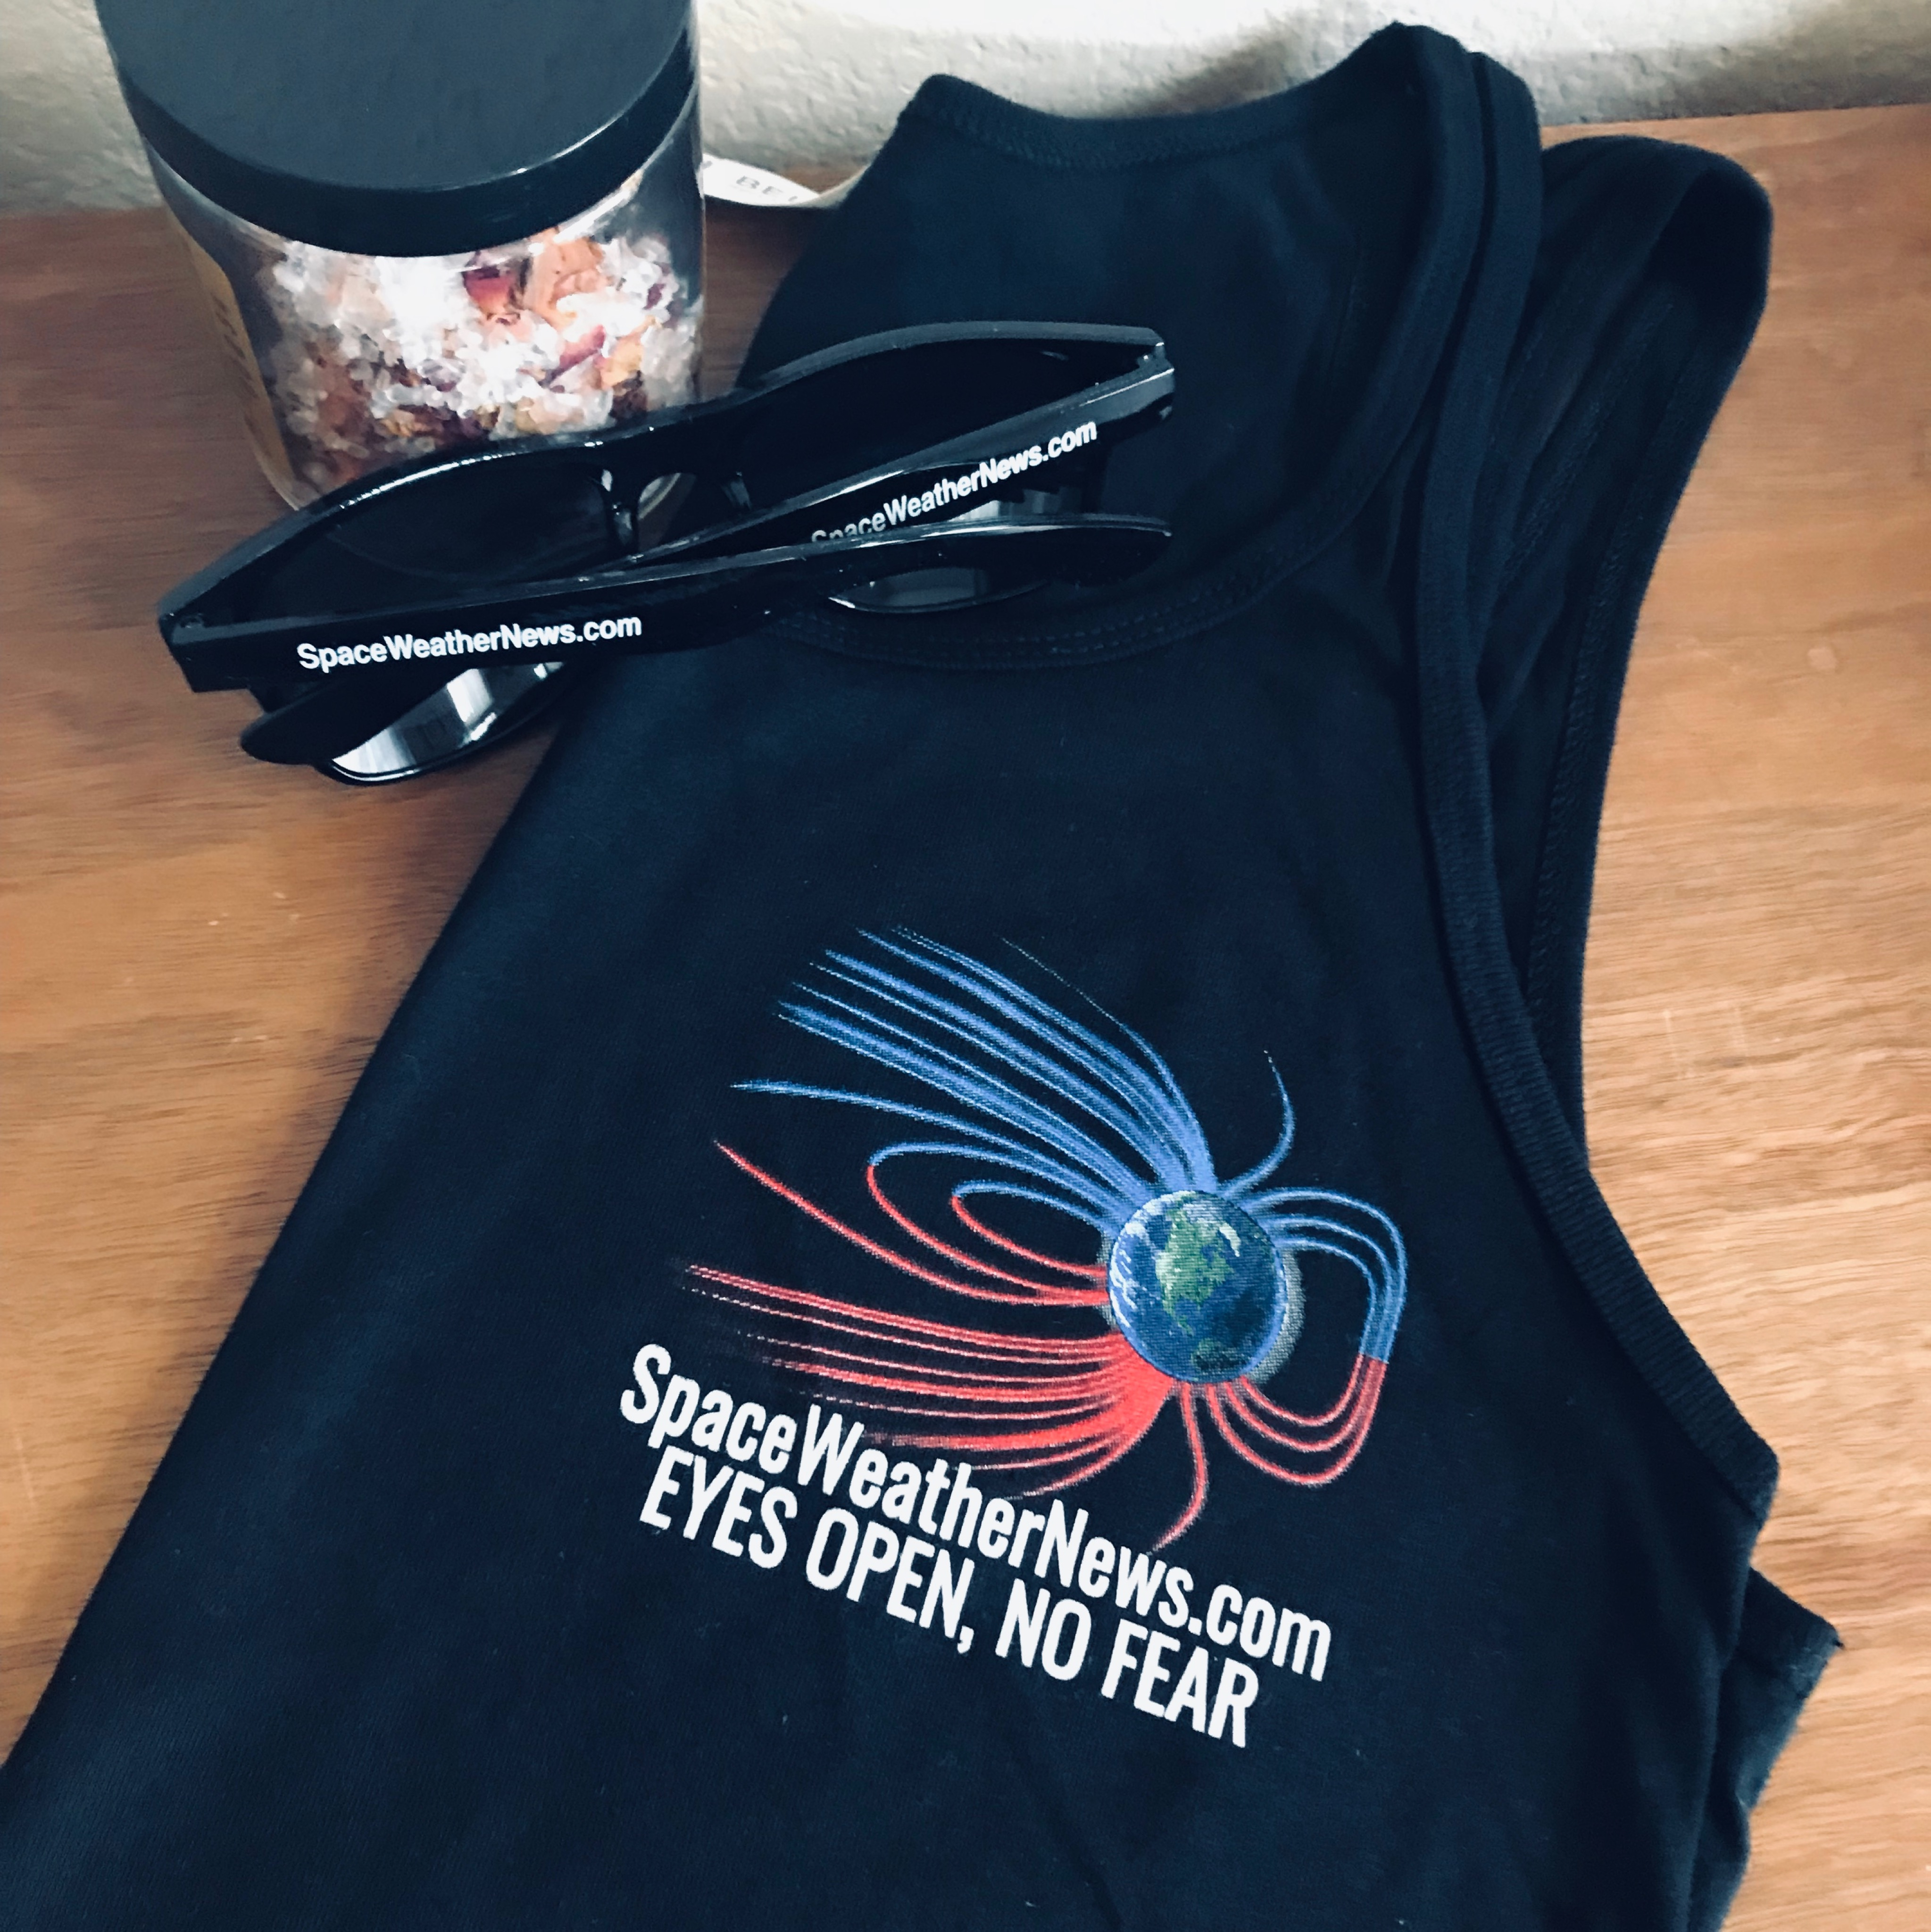 Space Weather News Women's Tank